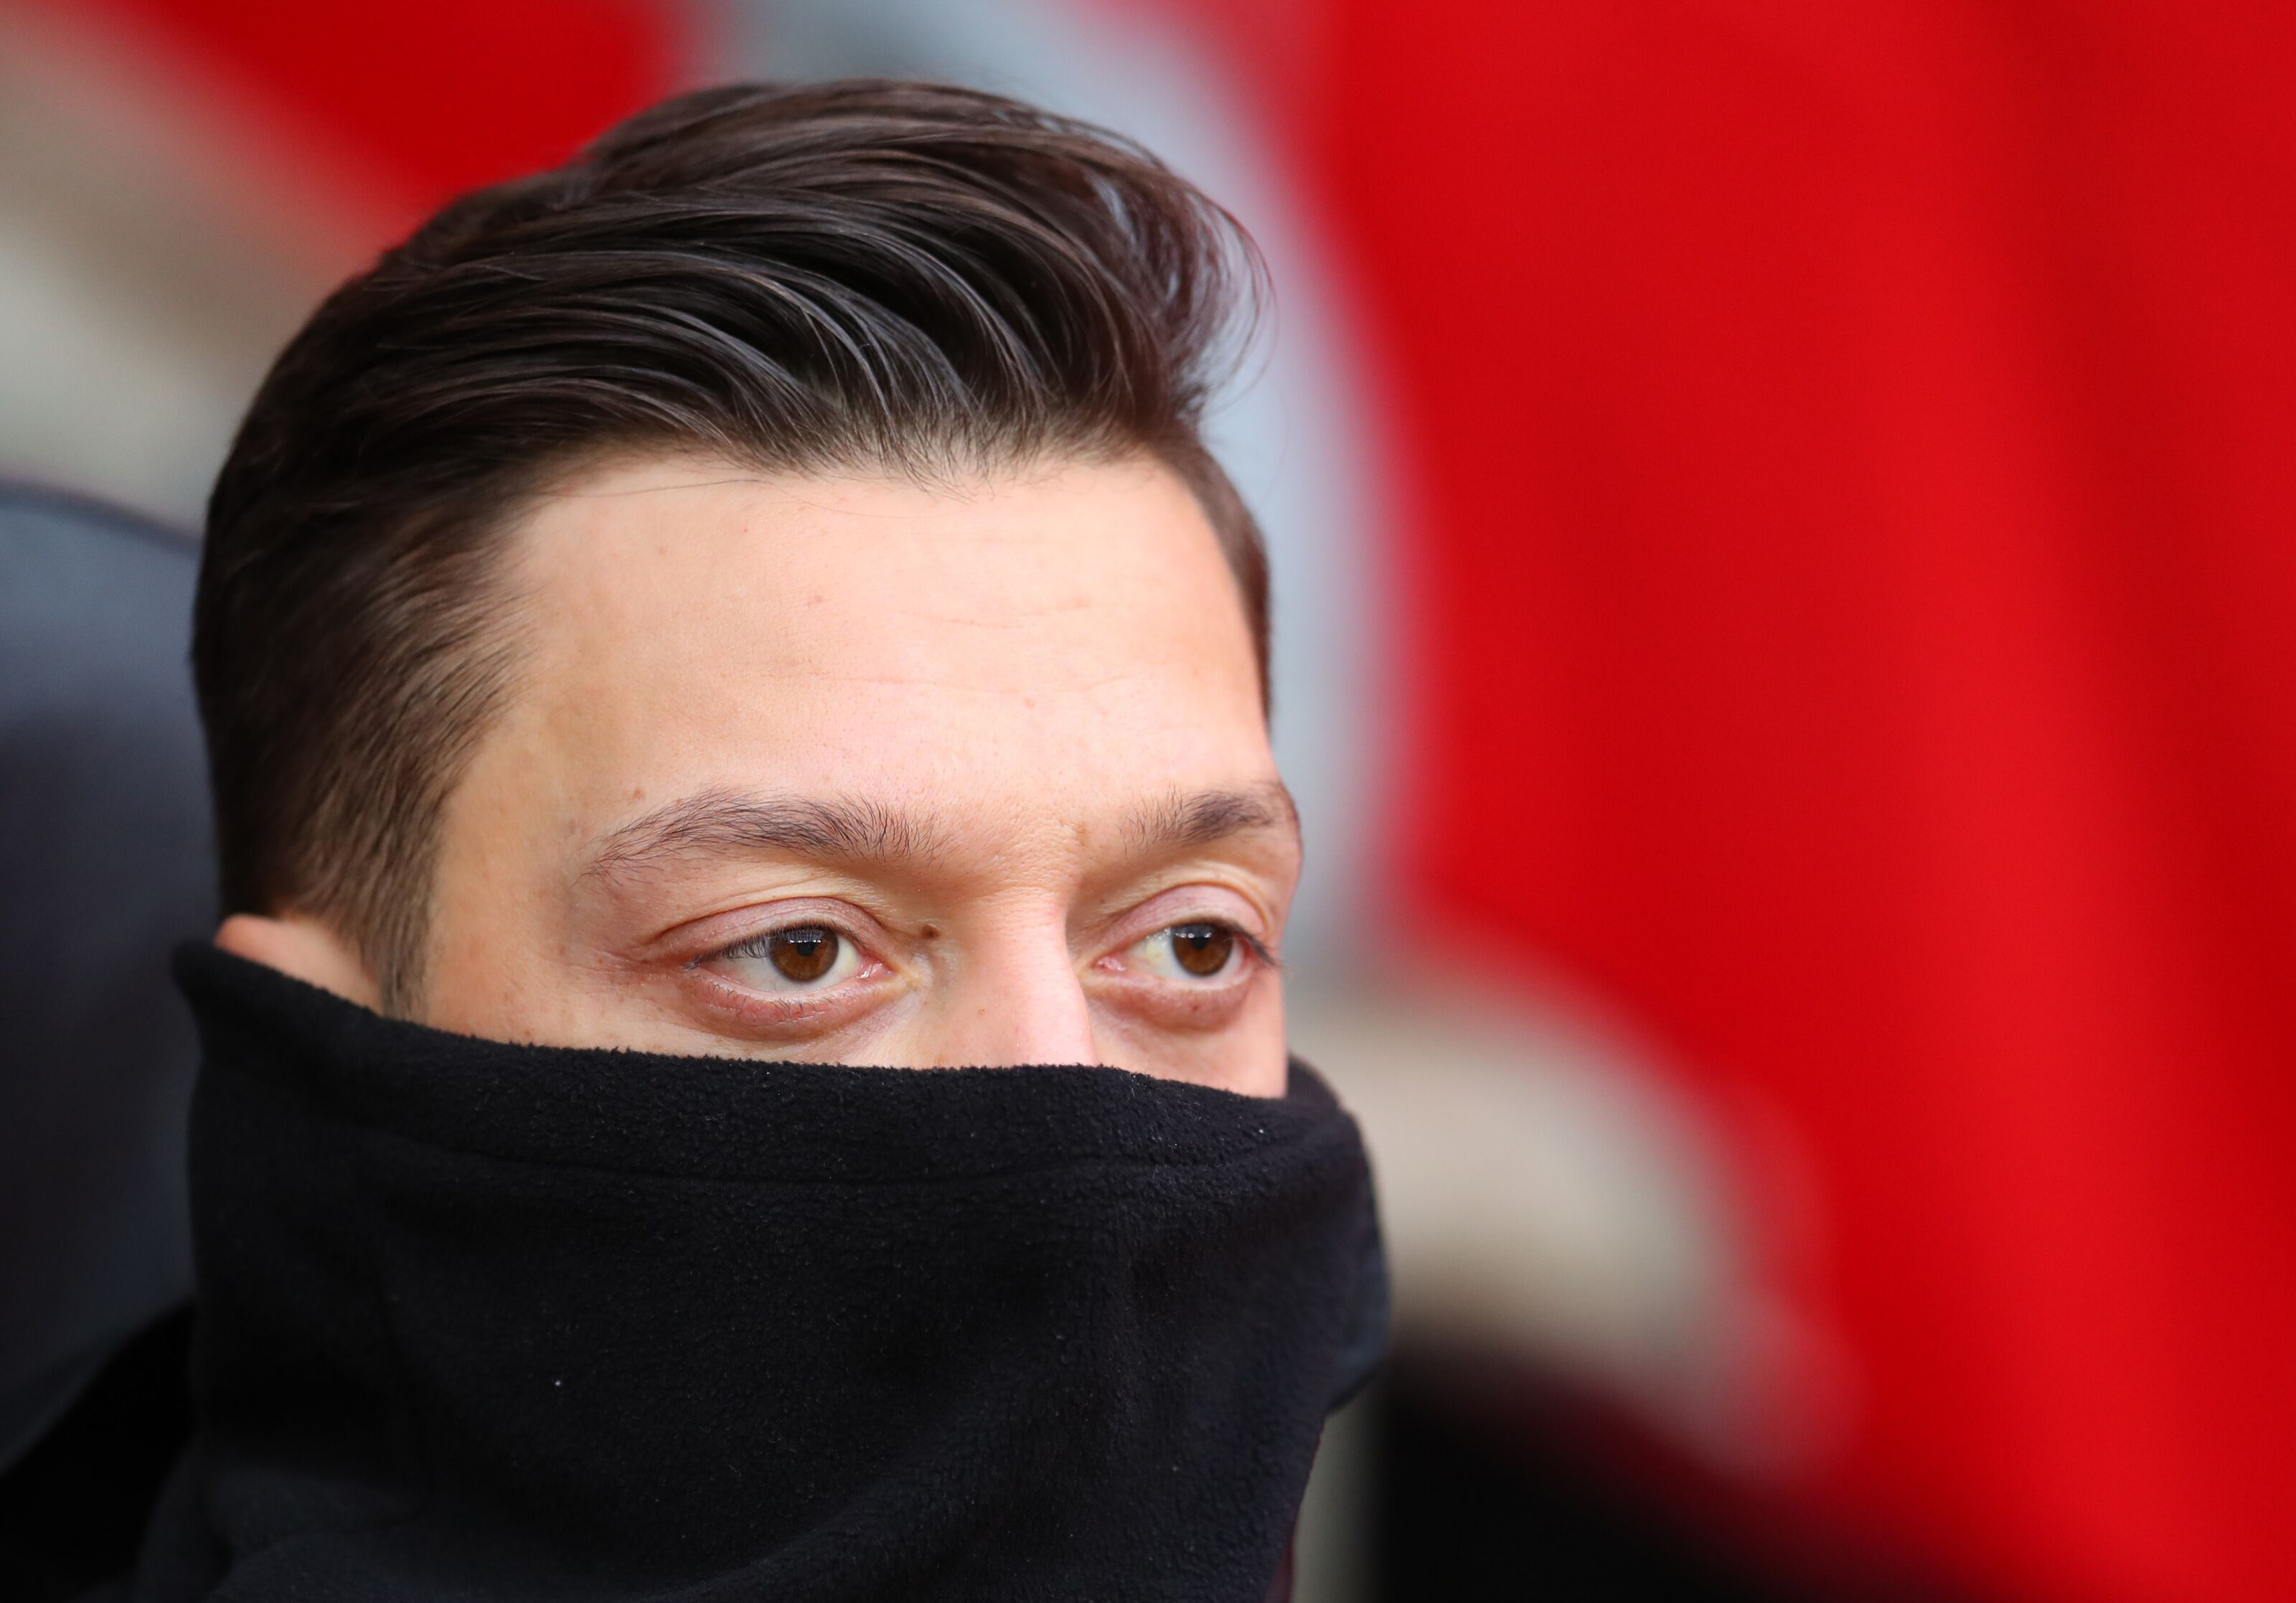 Arsenal: The Mesut Ozil hostage situation is ongoing